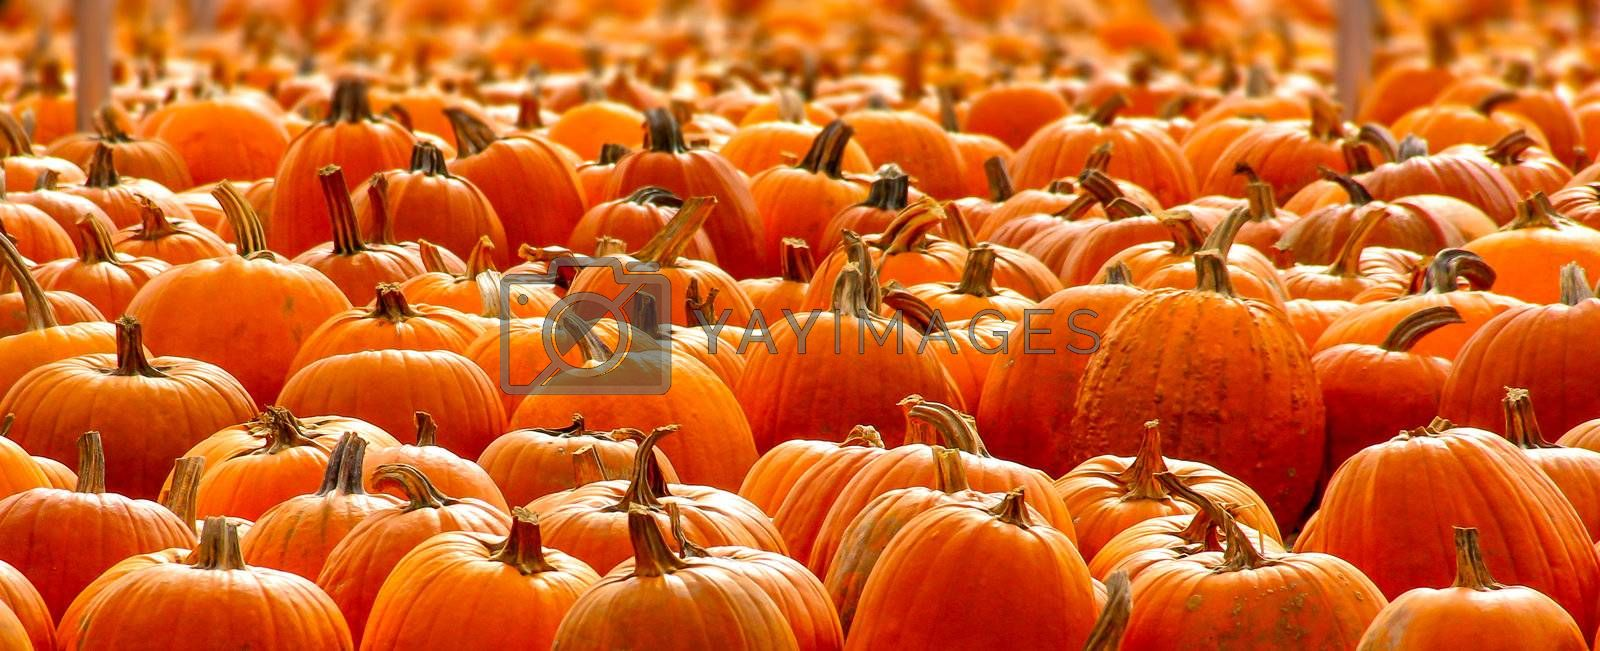 Rows of Halloween Pumpkins Selectively Focused.